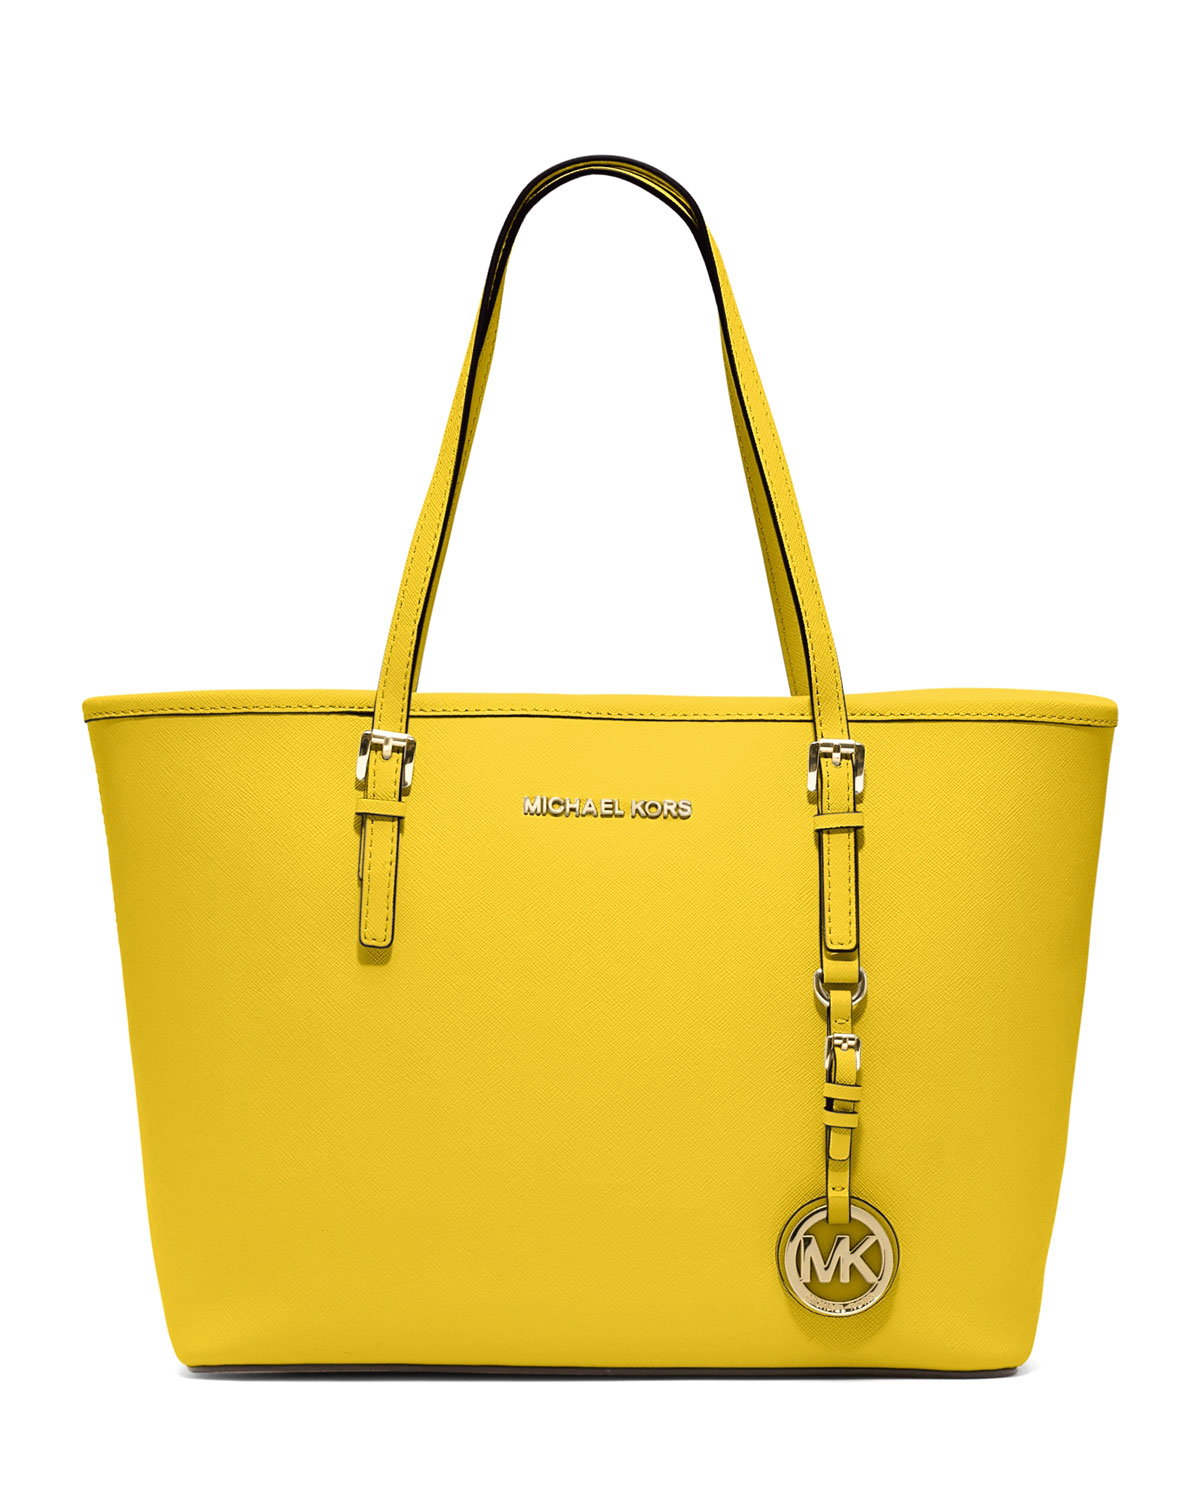 michael kors small jet set saffiano travel tote in yellow jet lyst. Black Bedroom Furniture Sets. Home Design Ideas